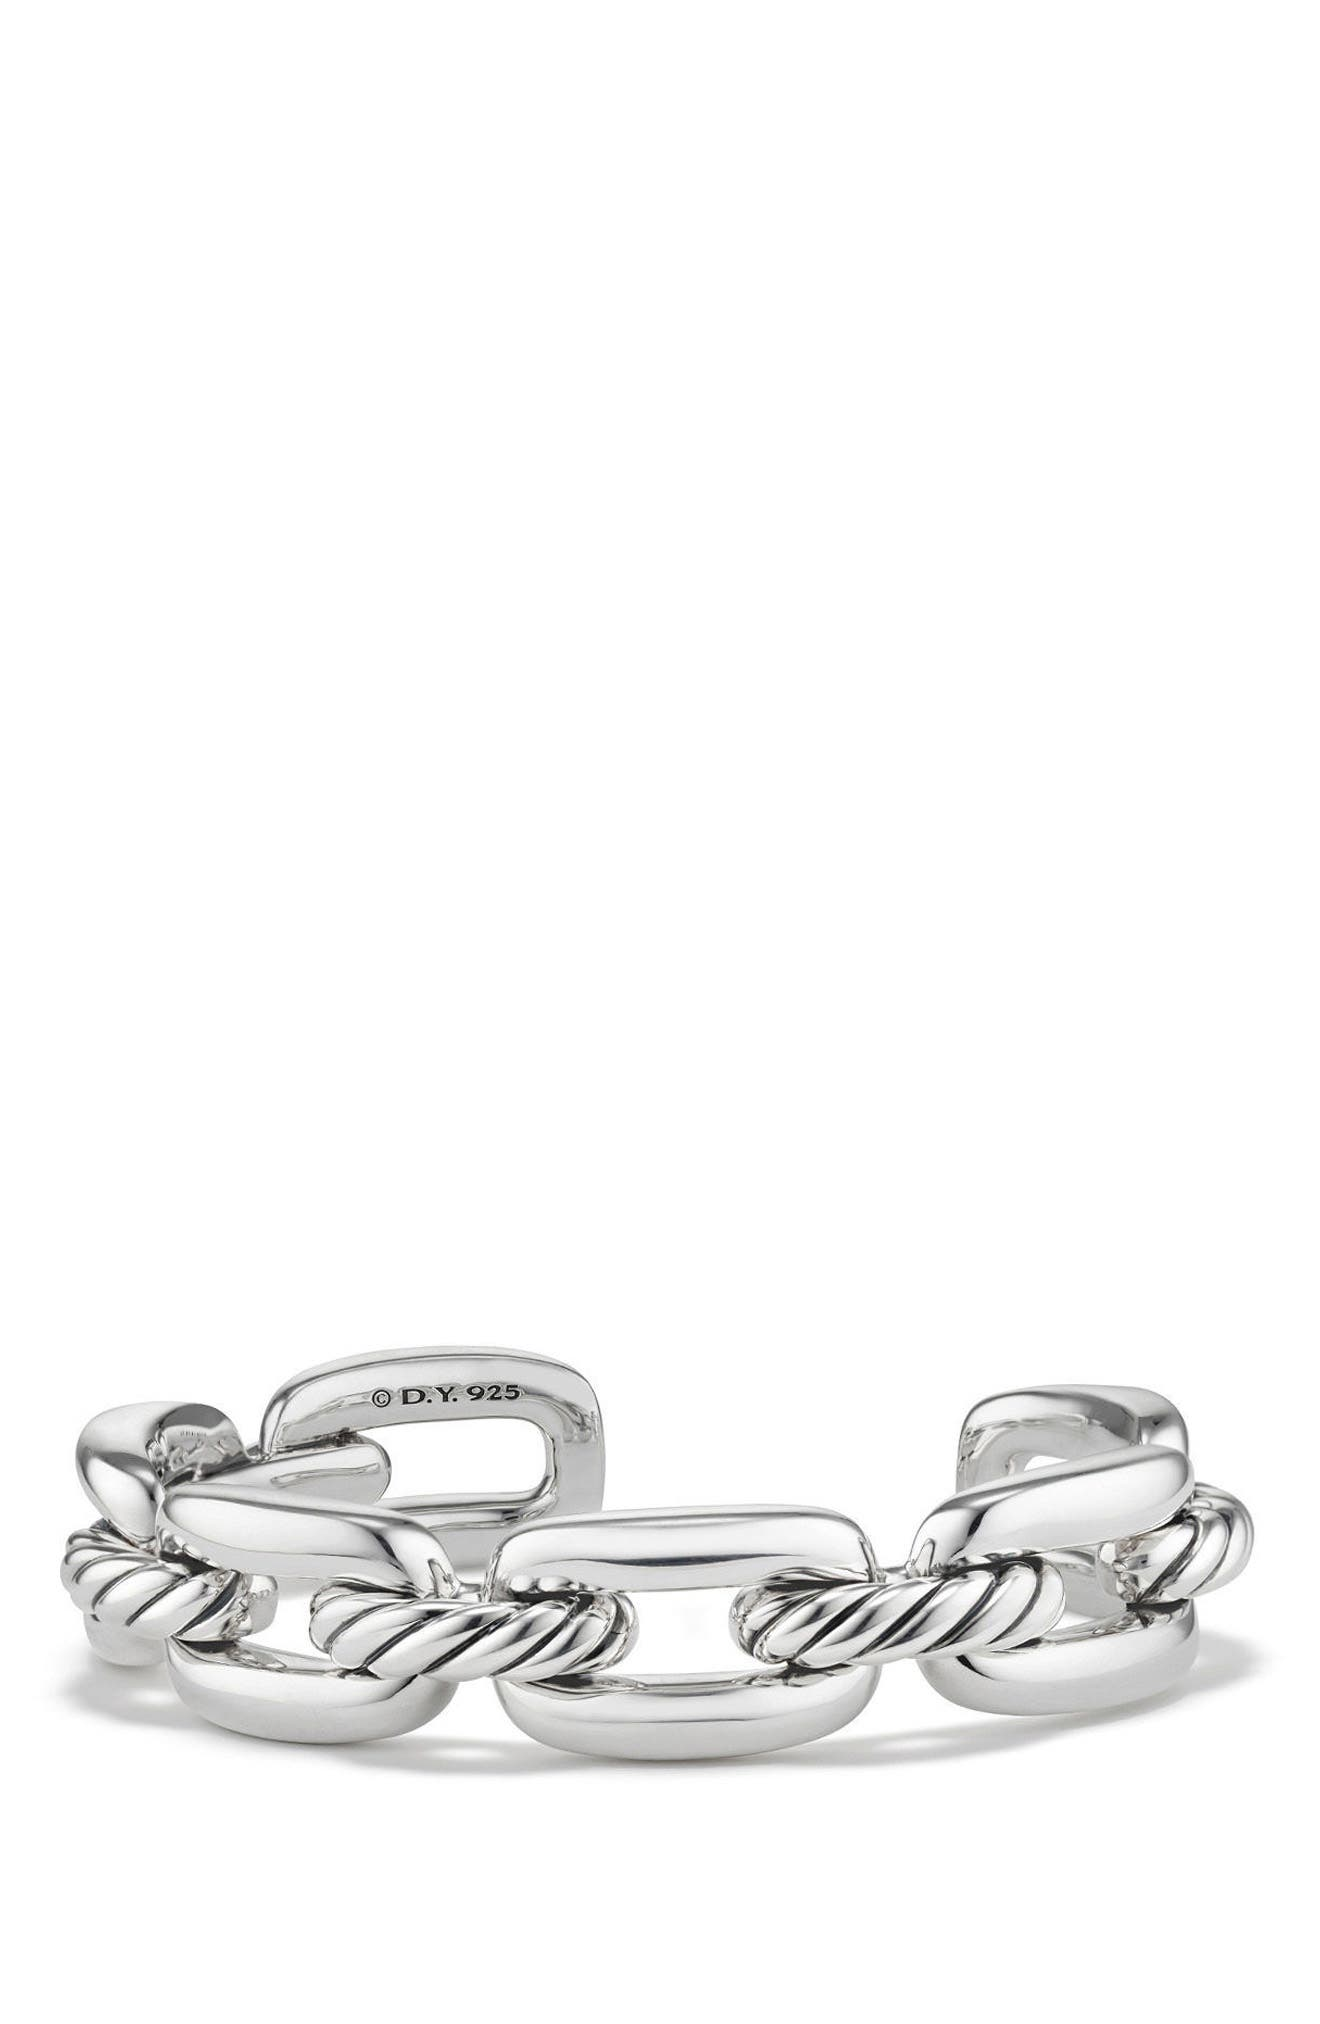 Alternate Image 2  - David Yurman Wellesley Chain Link Cuff Bracelet